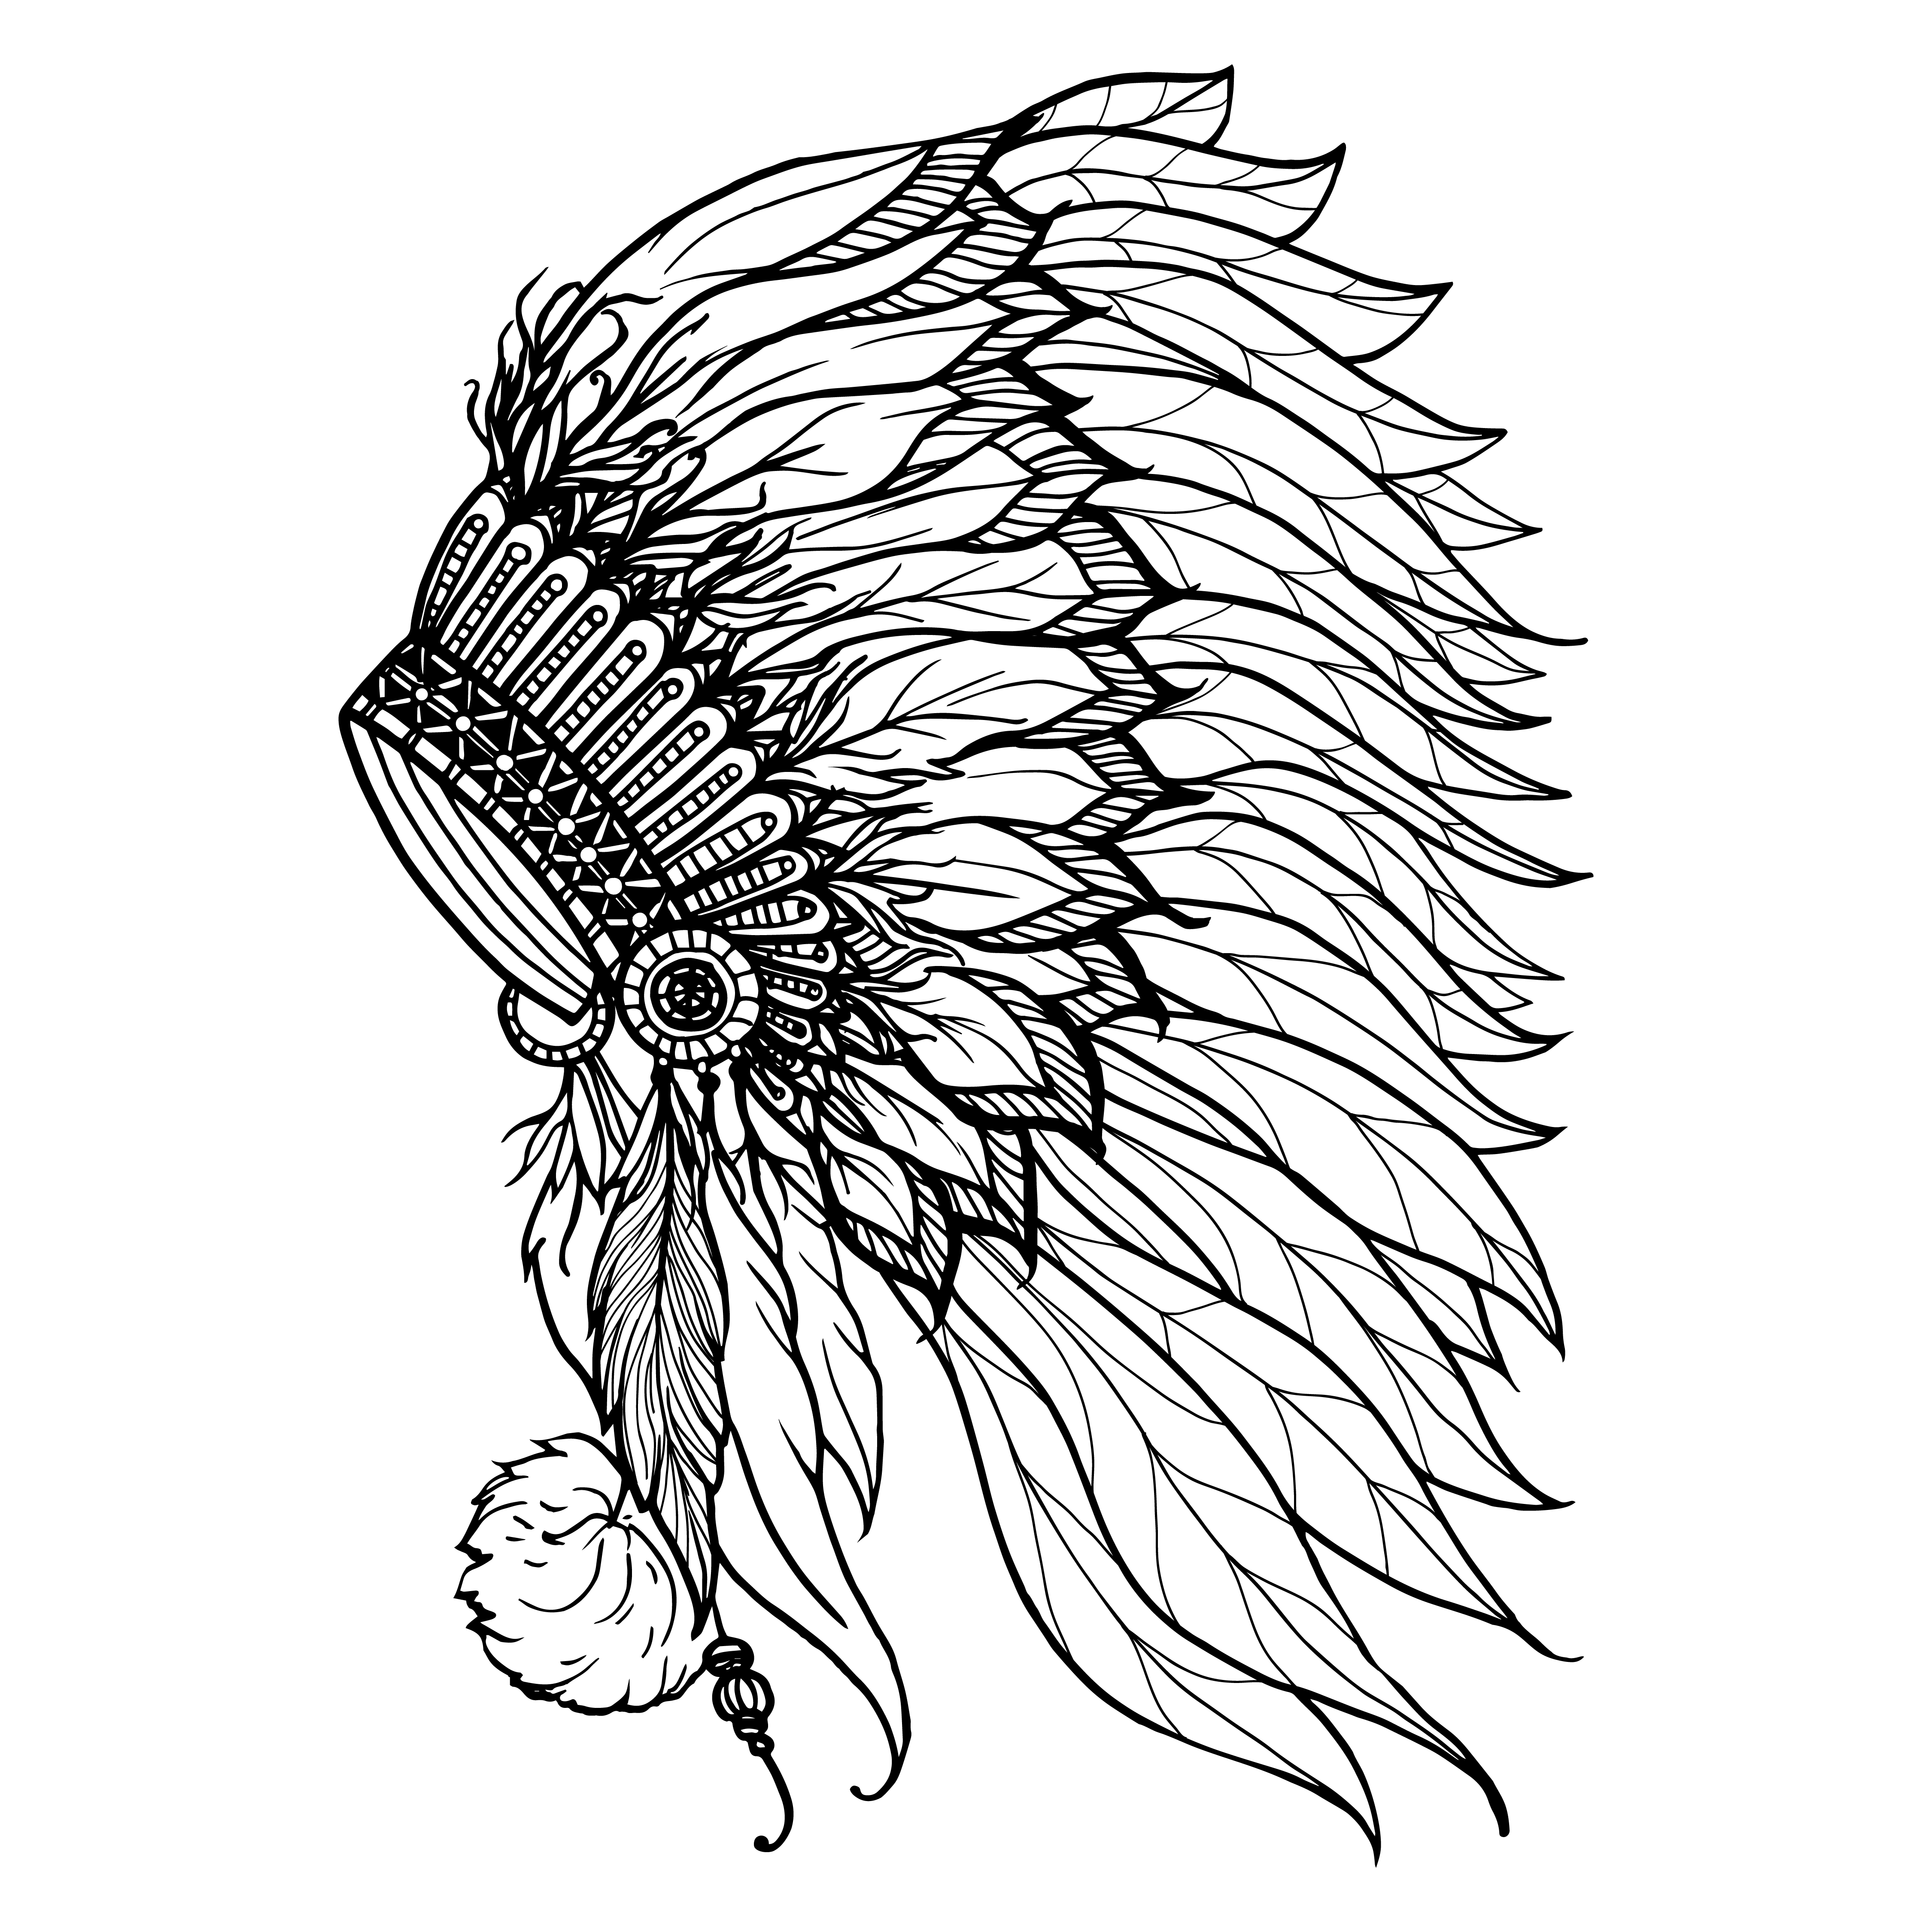 4500x4500 Doodle Headdress For Indian Chief